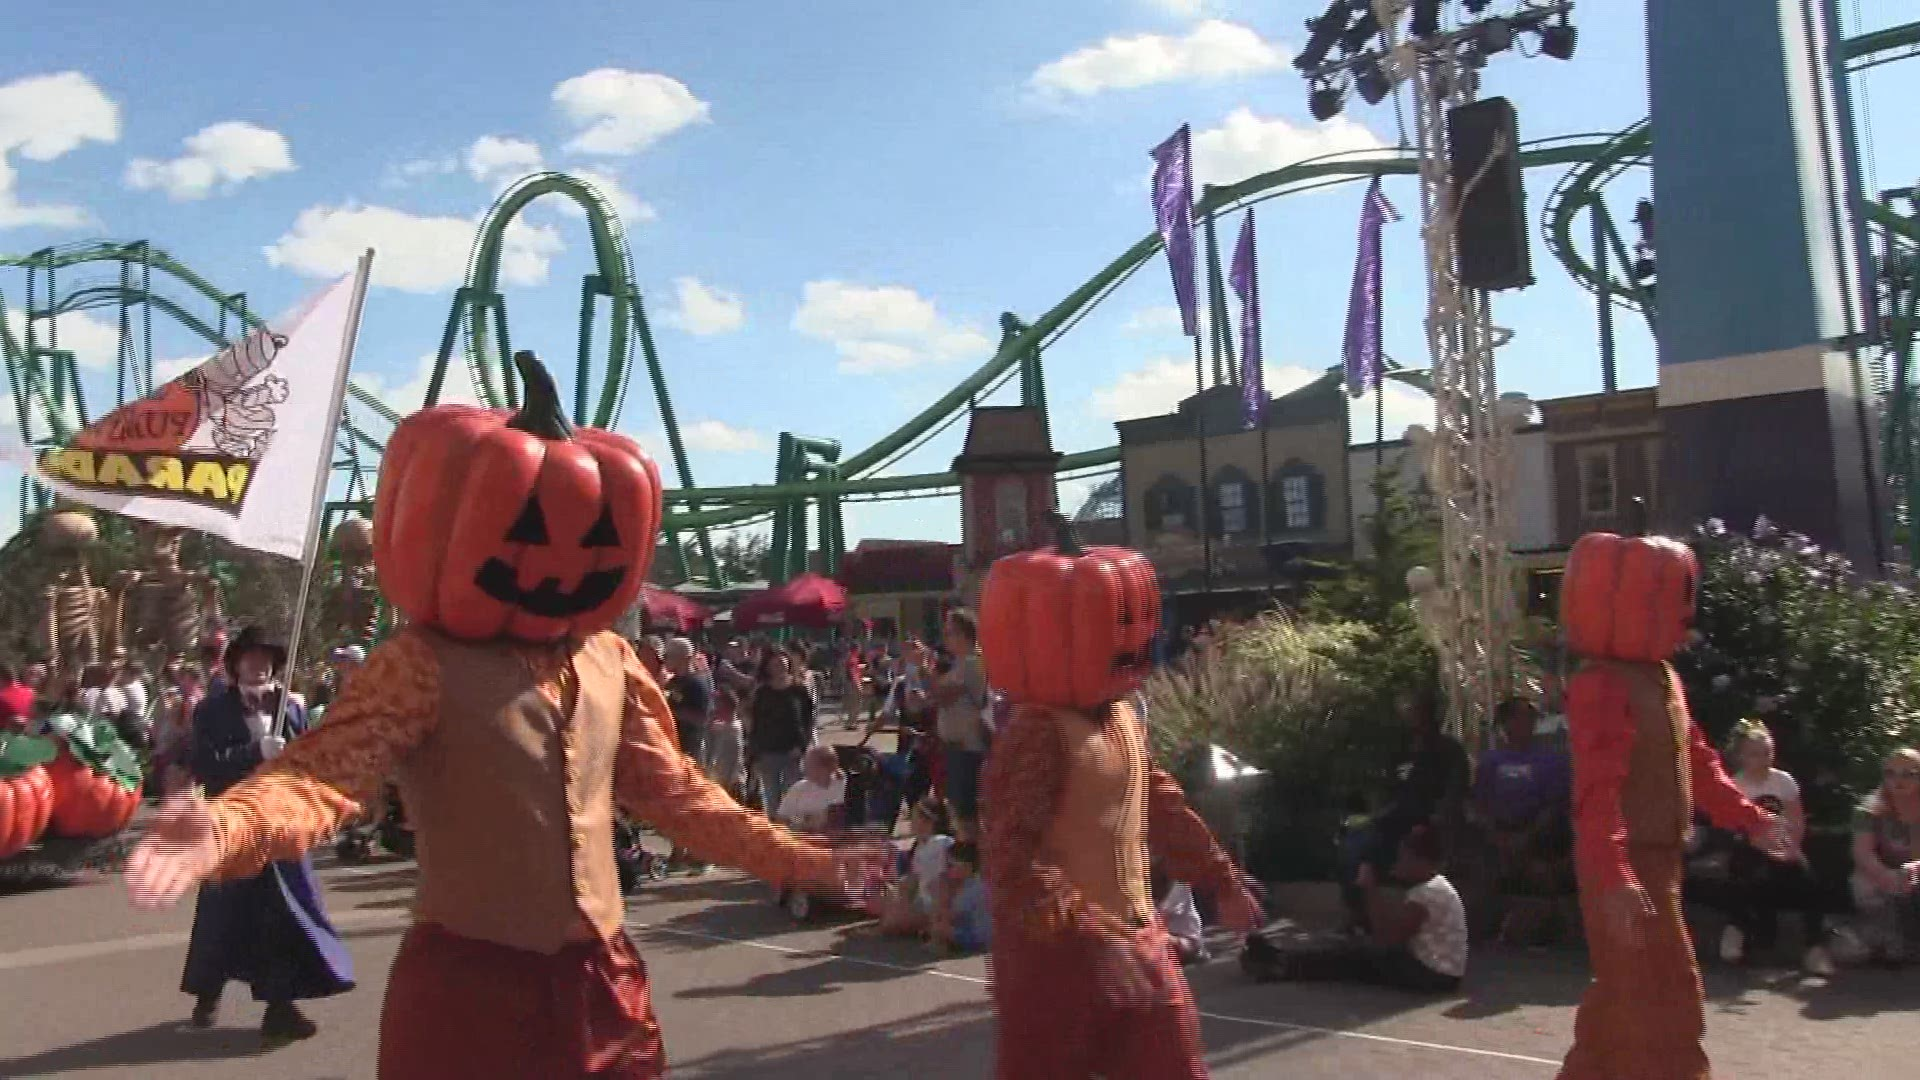 Halloween Events 2020 Dmv What is replacing HalloWeekends at Cedar Point? New event planned